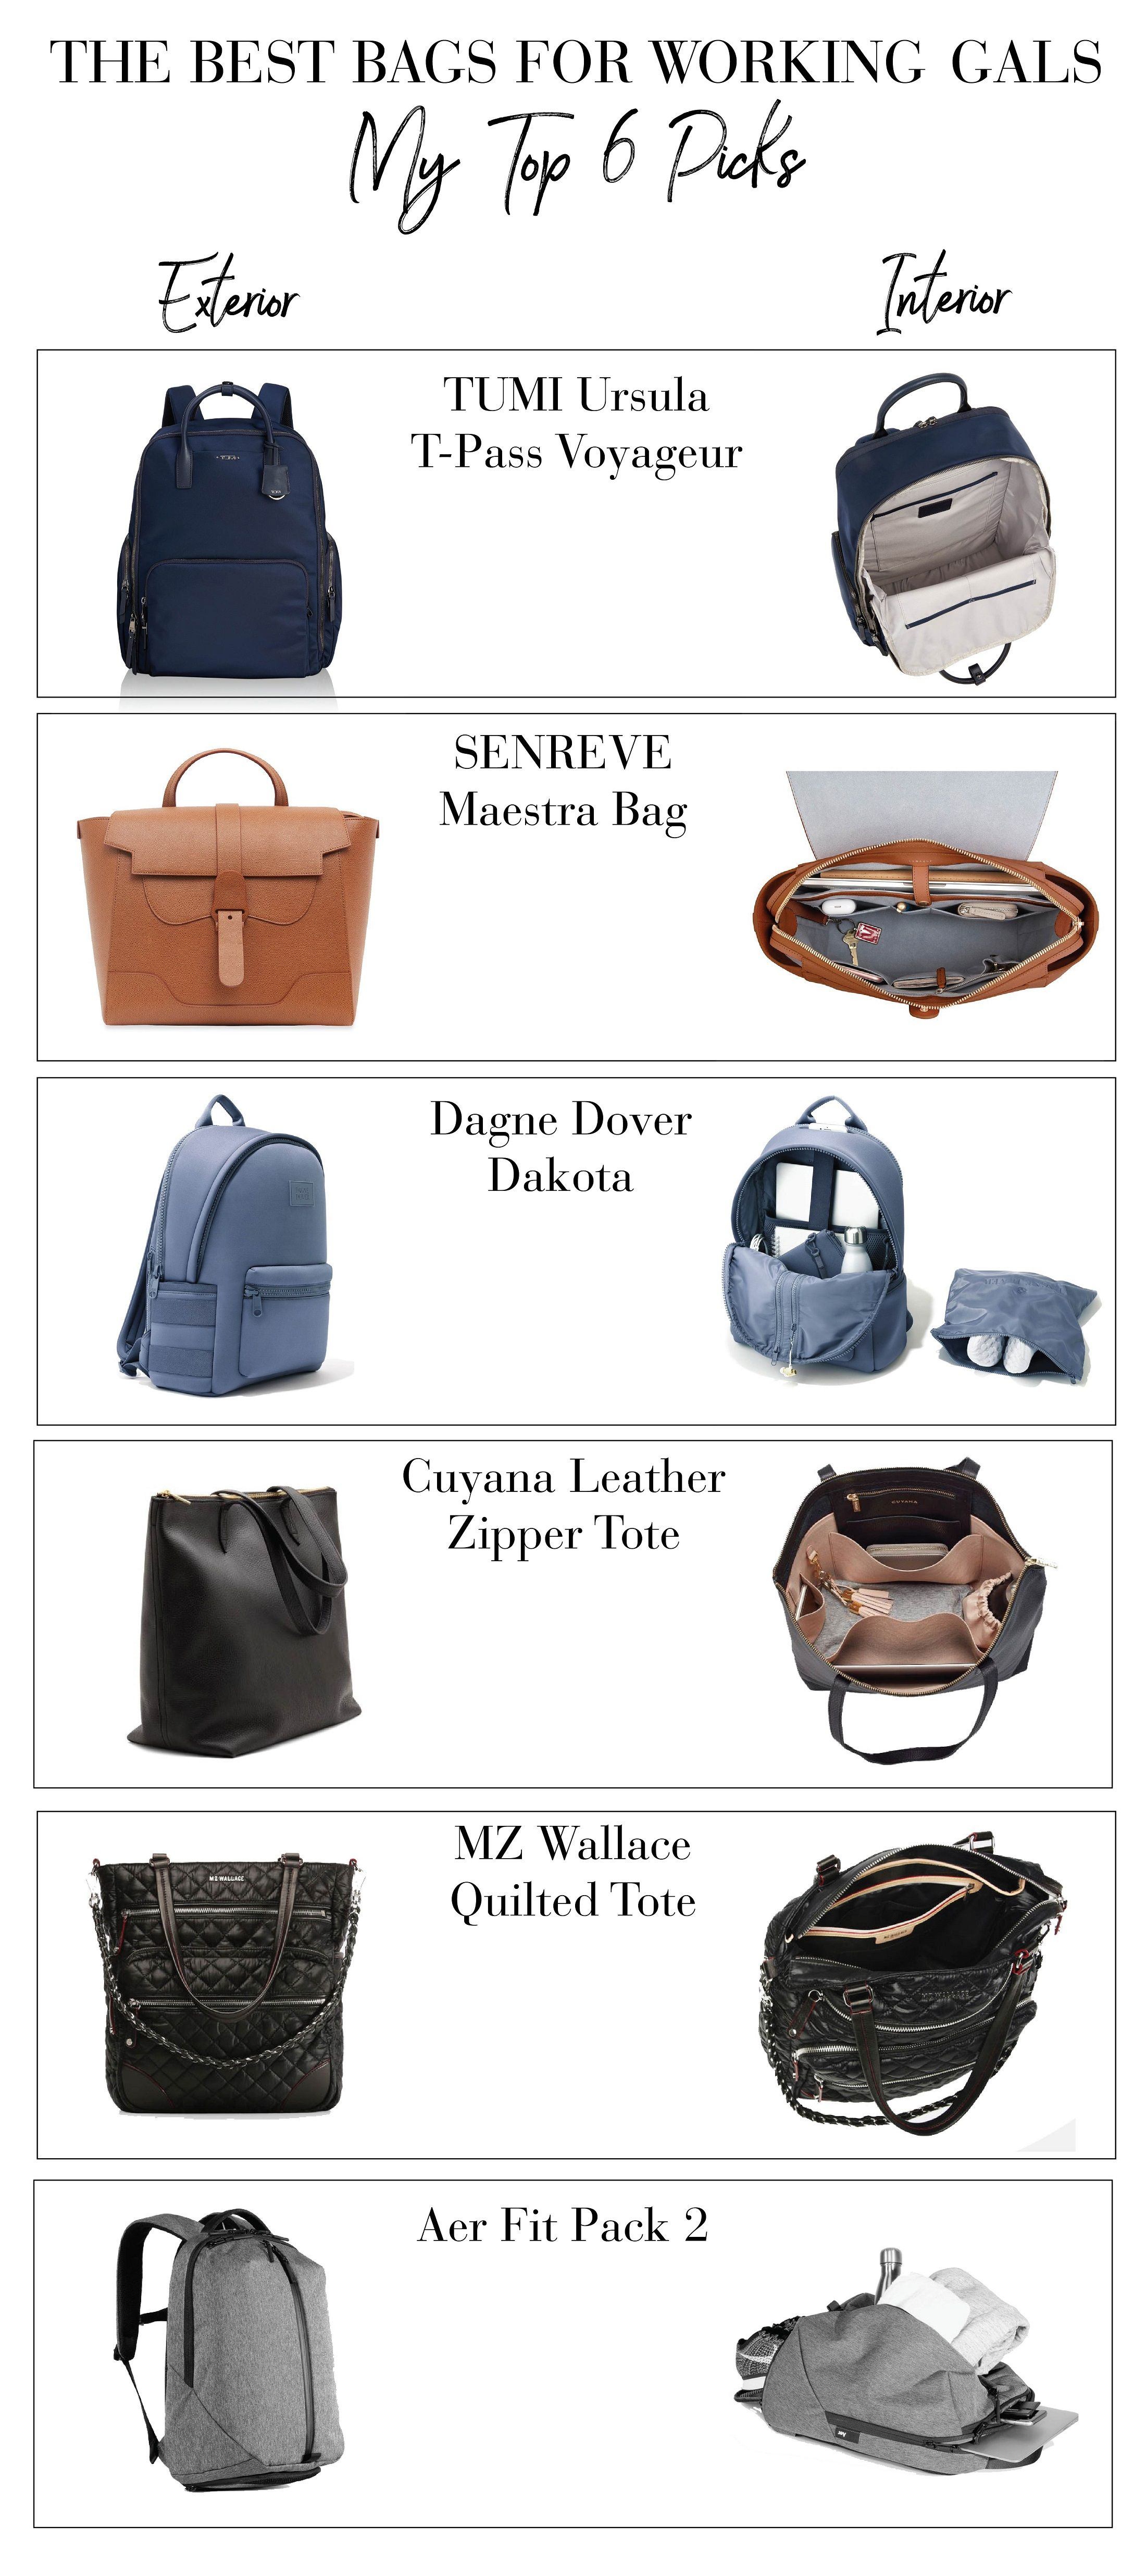 fe2258c416 We ve collected the 44 most stylish office bags for working women that fit  a laptop